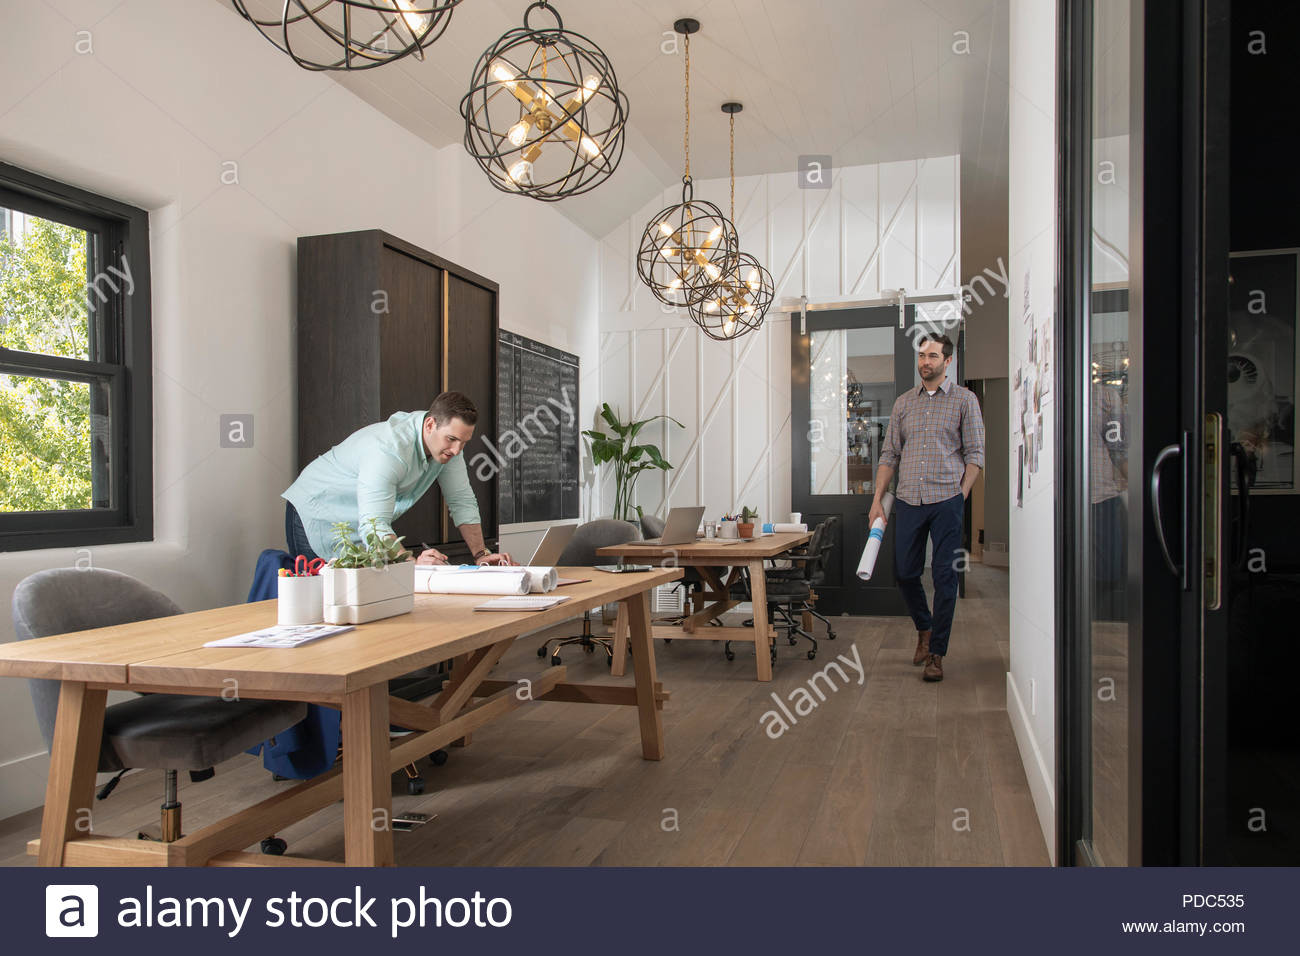 Home builder architect and designer working in office - Stock Image